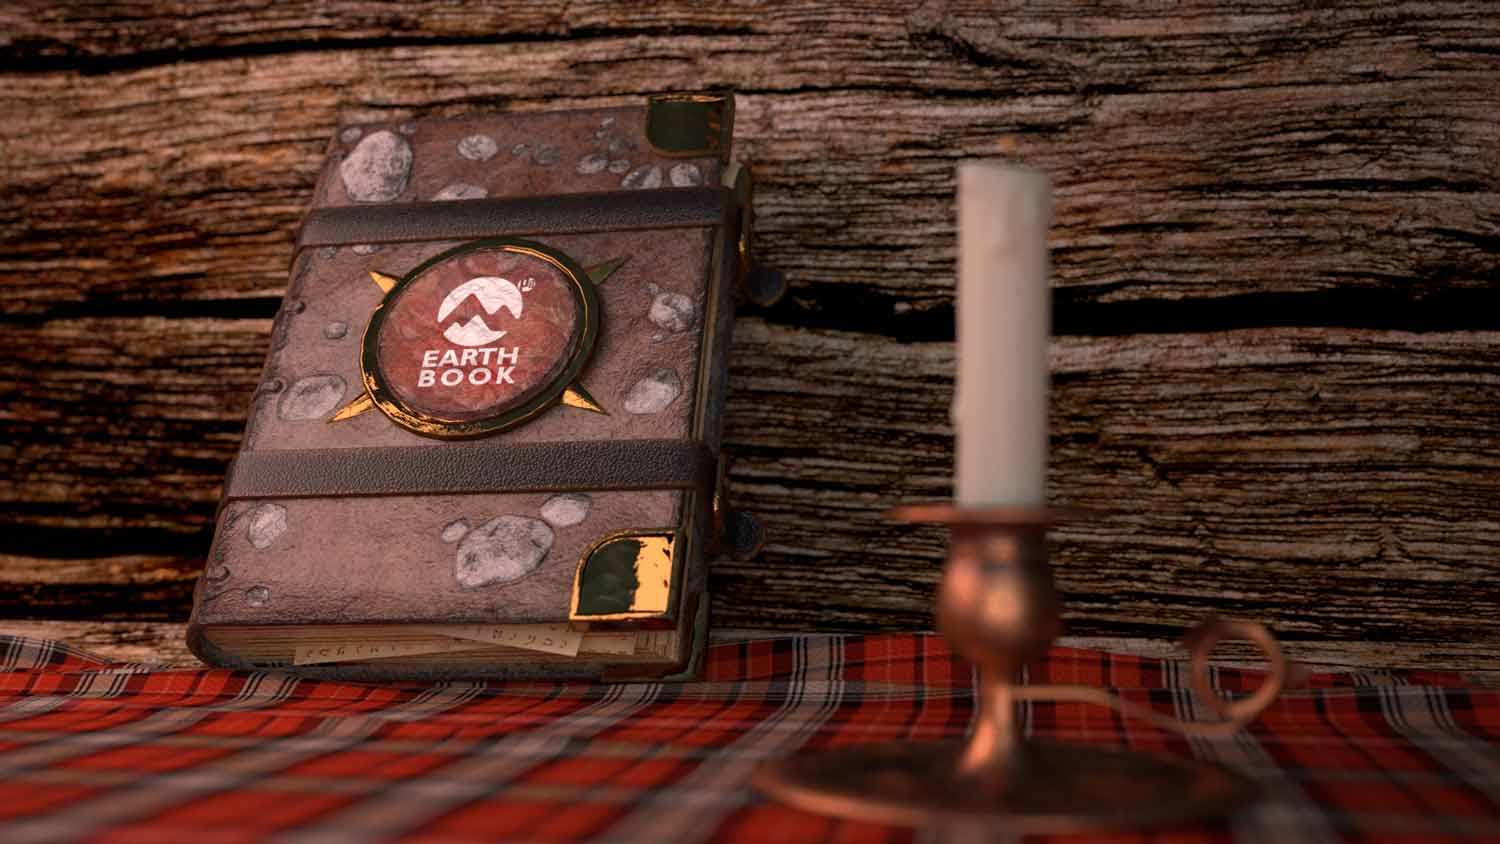 wool-jacquard-red-wood-earthbook-book-tome-bougeoir-iron-candle-bougie-light-fire-front-3d-pixelion8